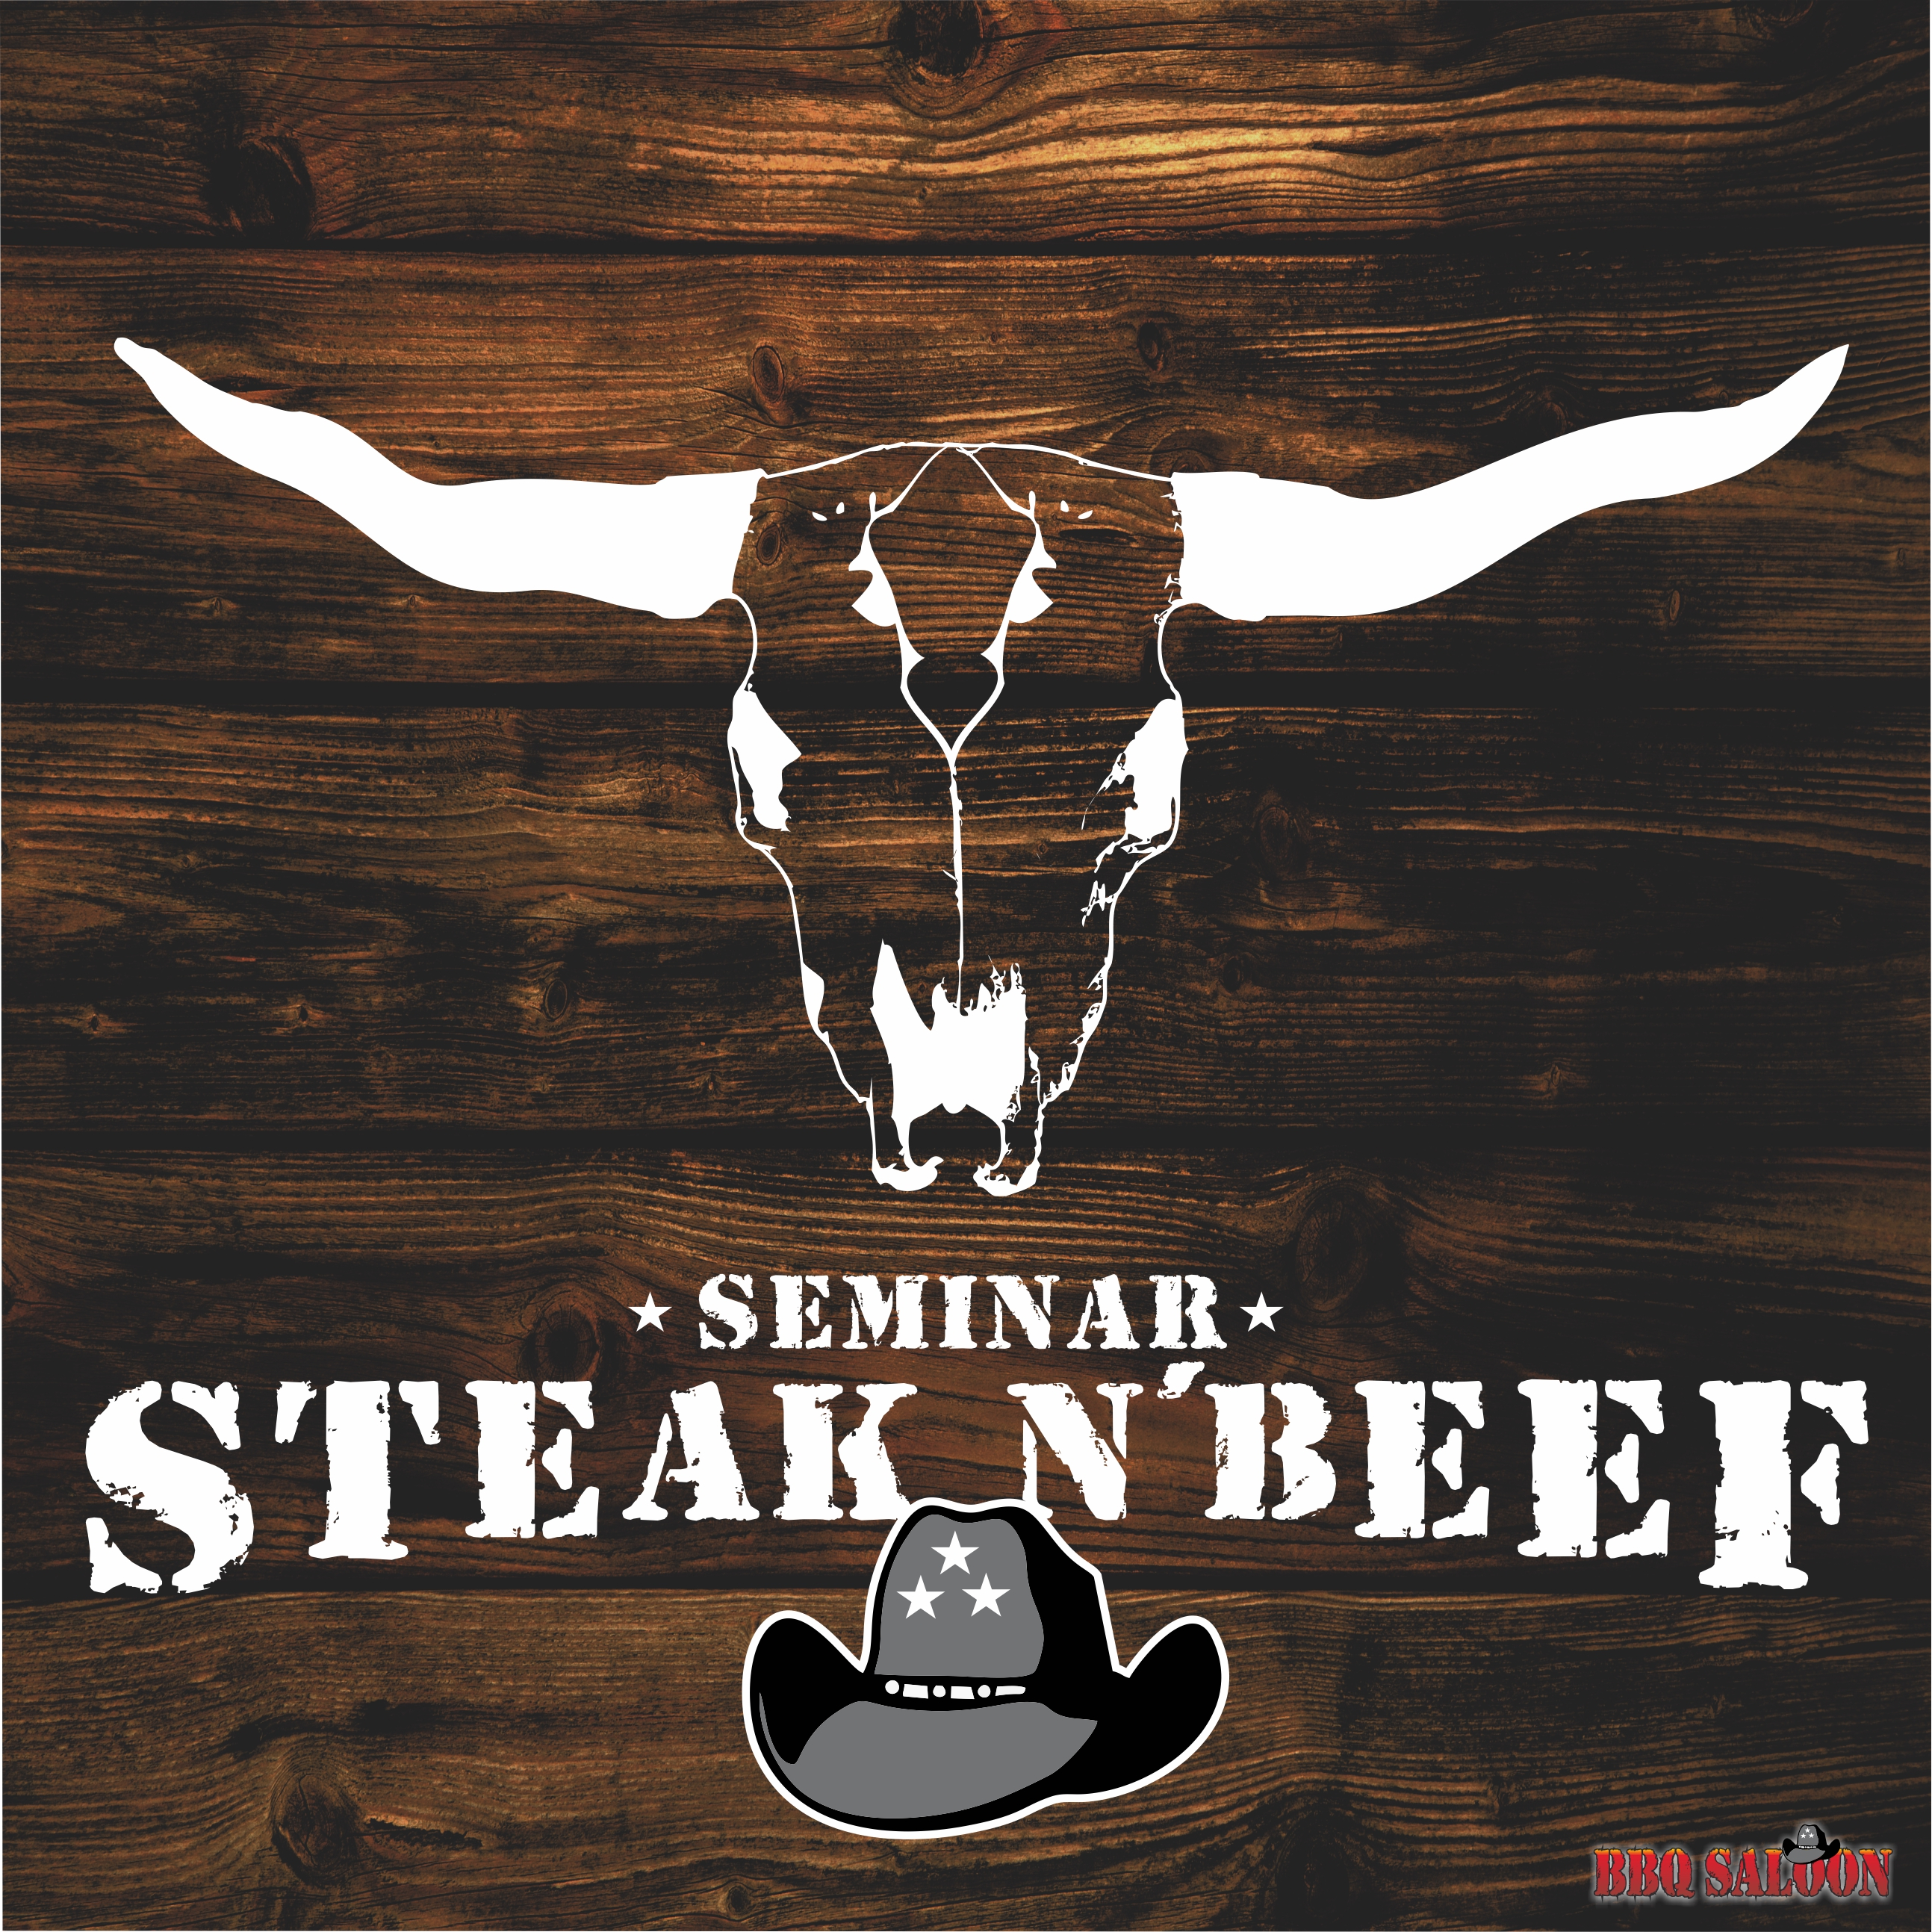 Themenseminar Steak 'nd Beef im BBQSaloon Minden